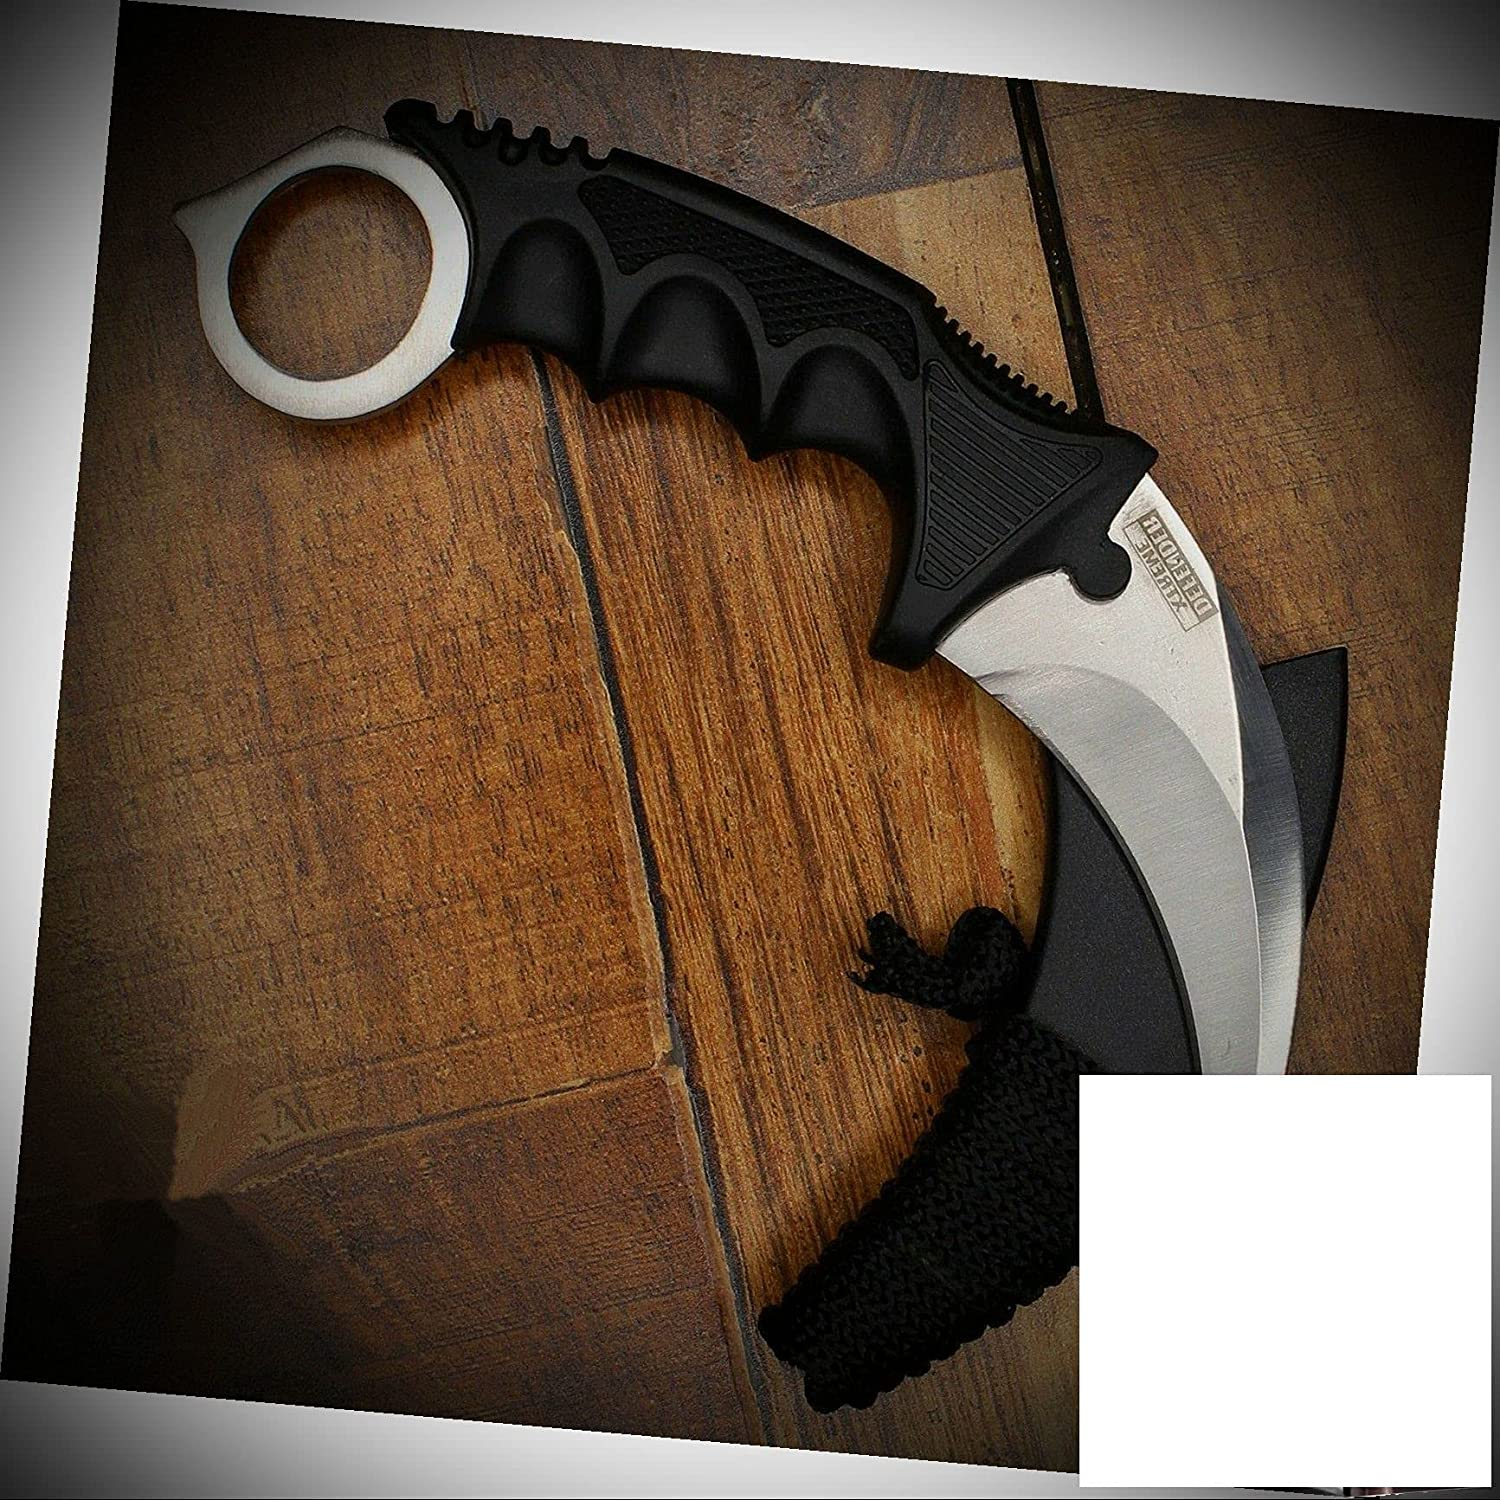 Hunting Karambit Stainless High quality new National products Steel Blade Combat Survival Fix Knife